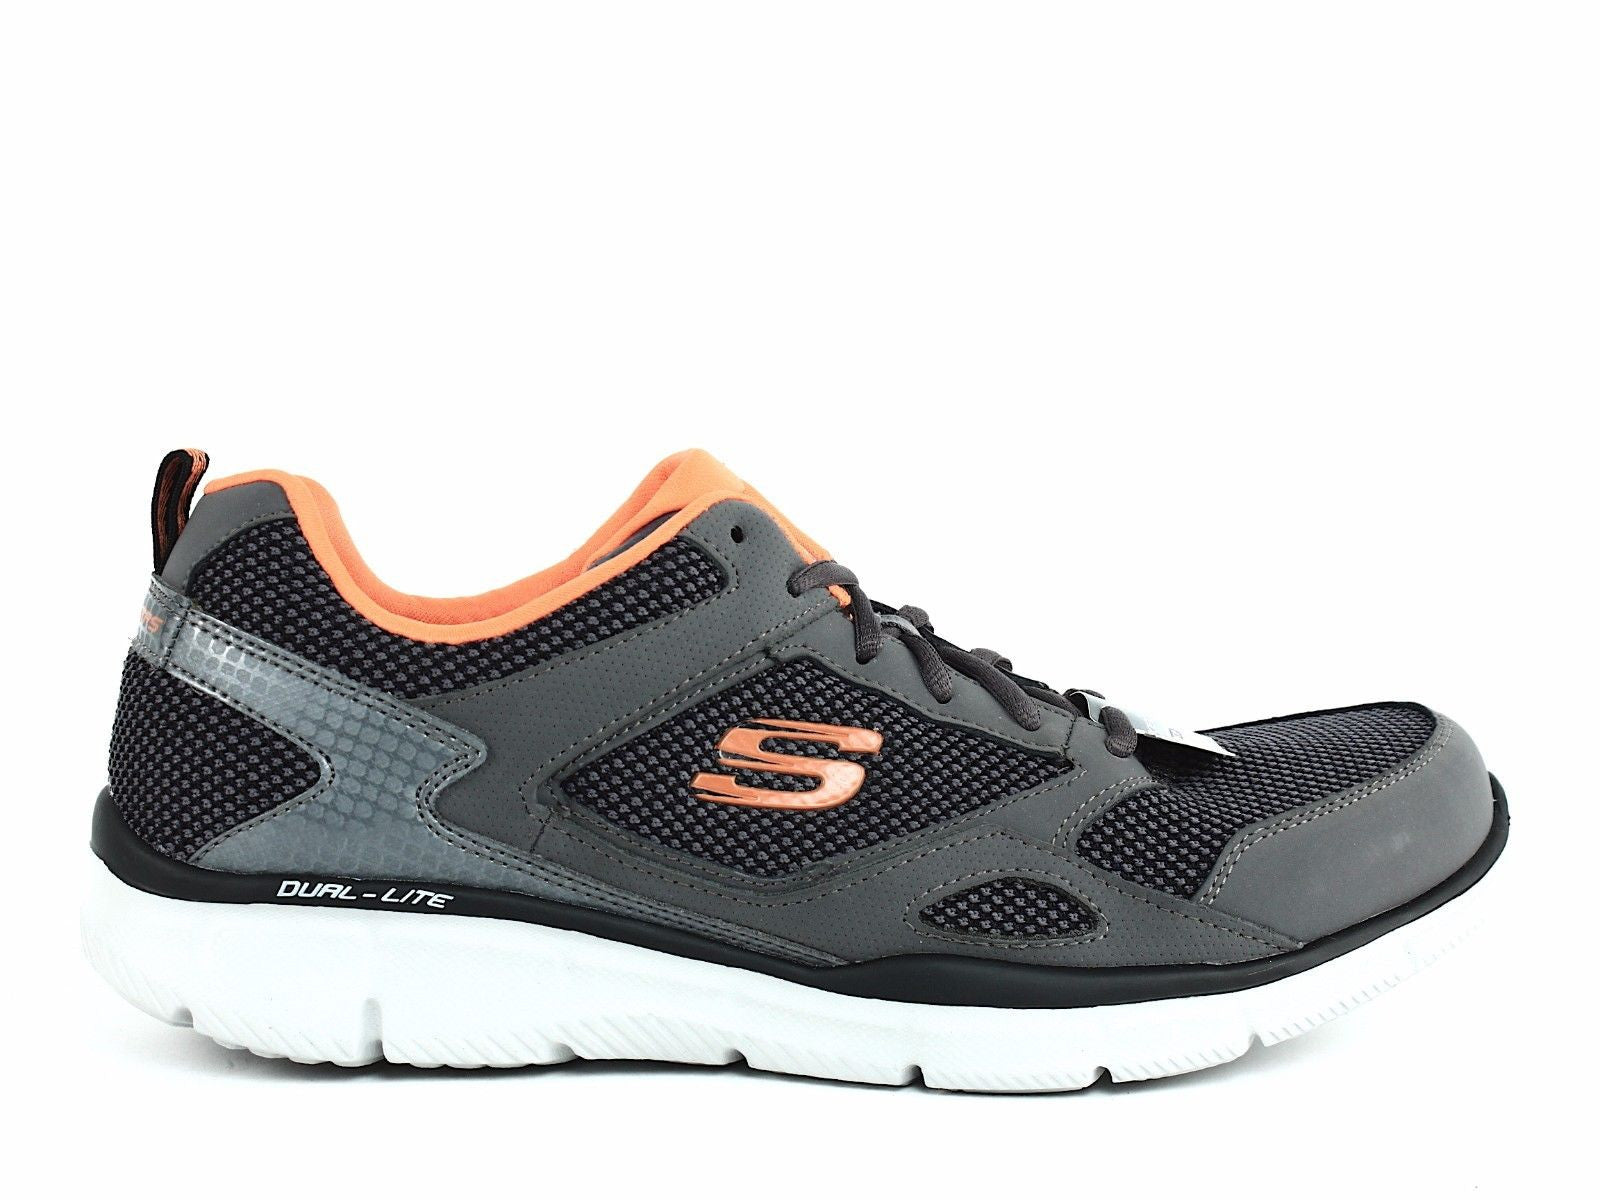 Skechers EQUALIZER Men's Athletic Walking Running Casual